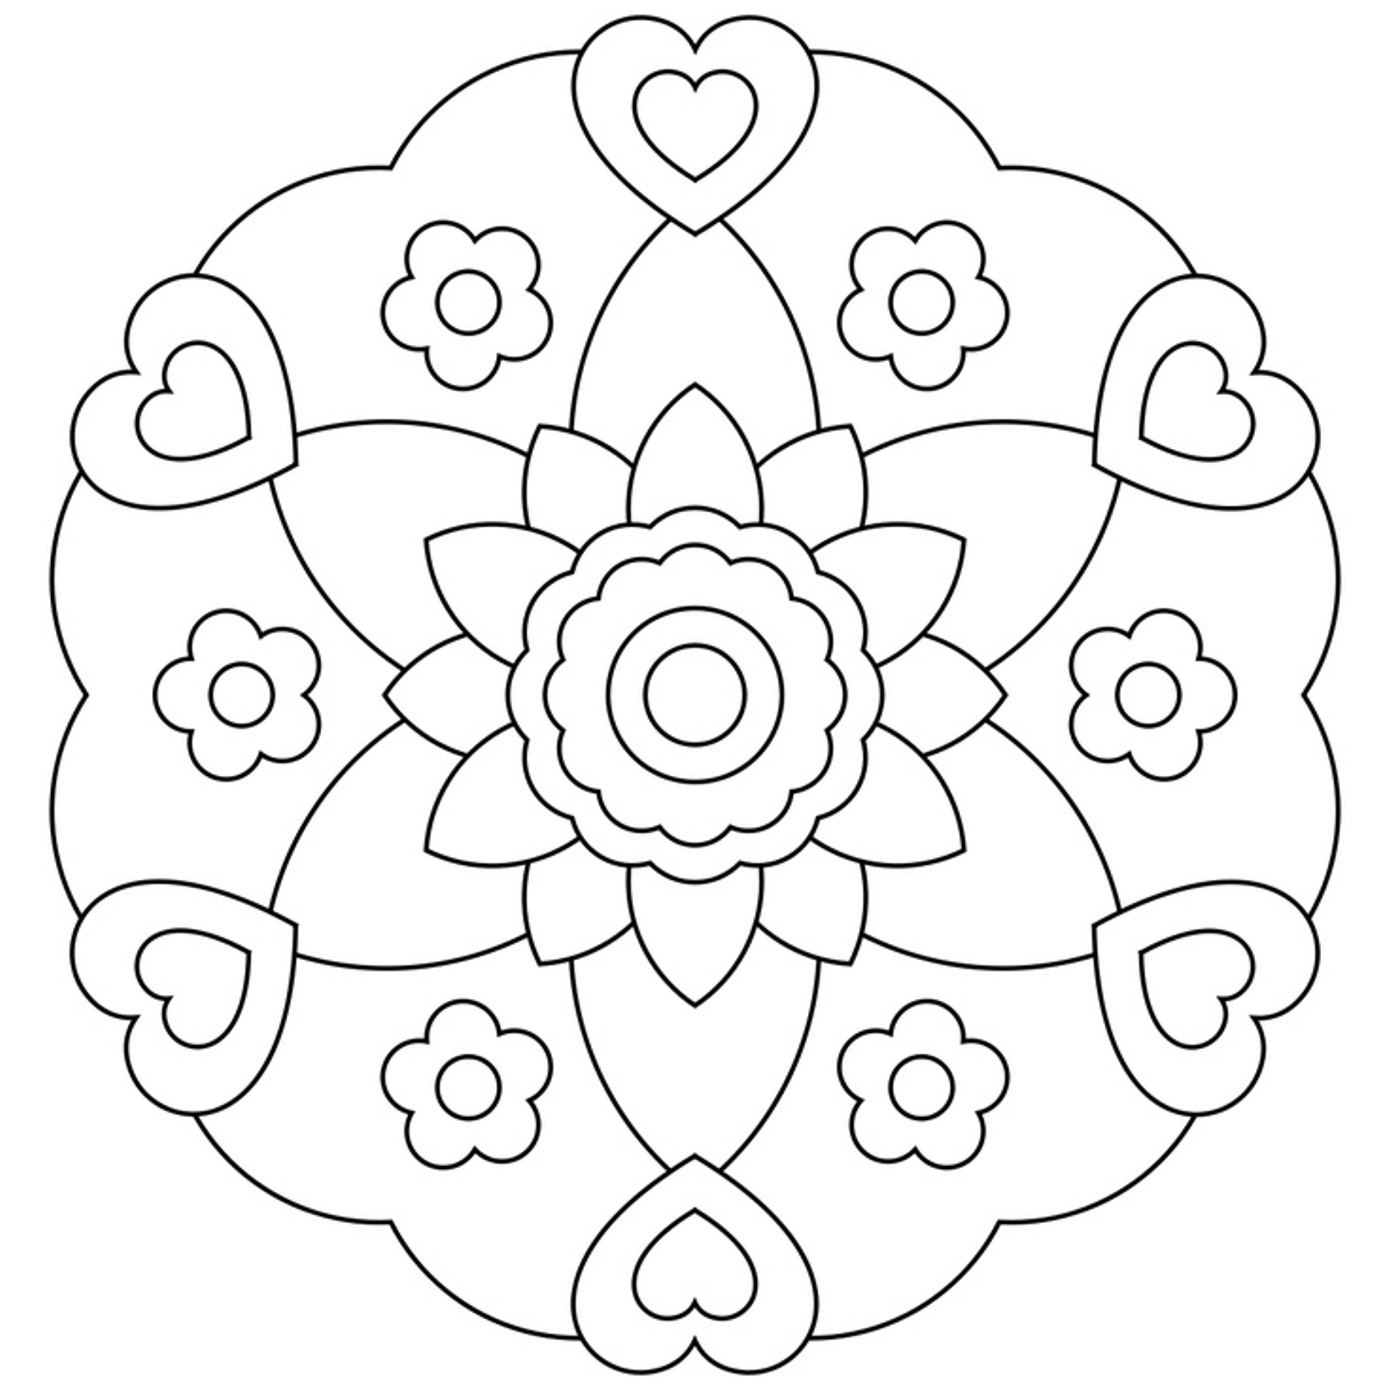 simple mandala coloring page best free easy flower mandala designs coloring pages mandala page simple coloring